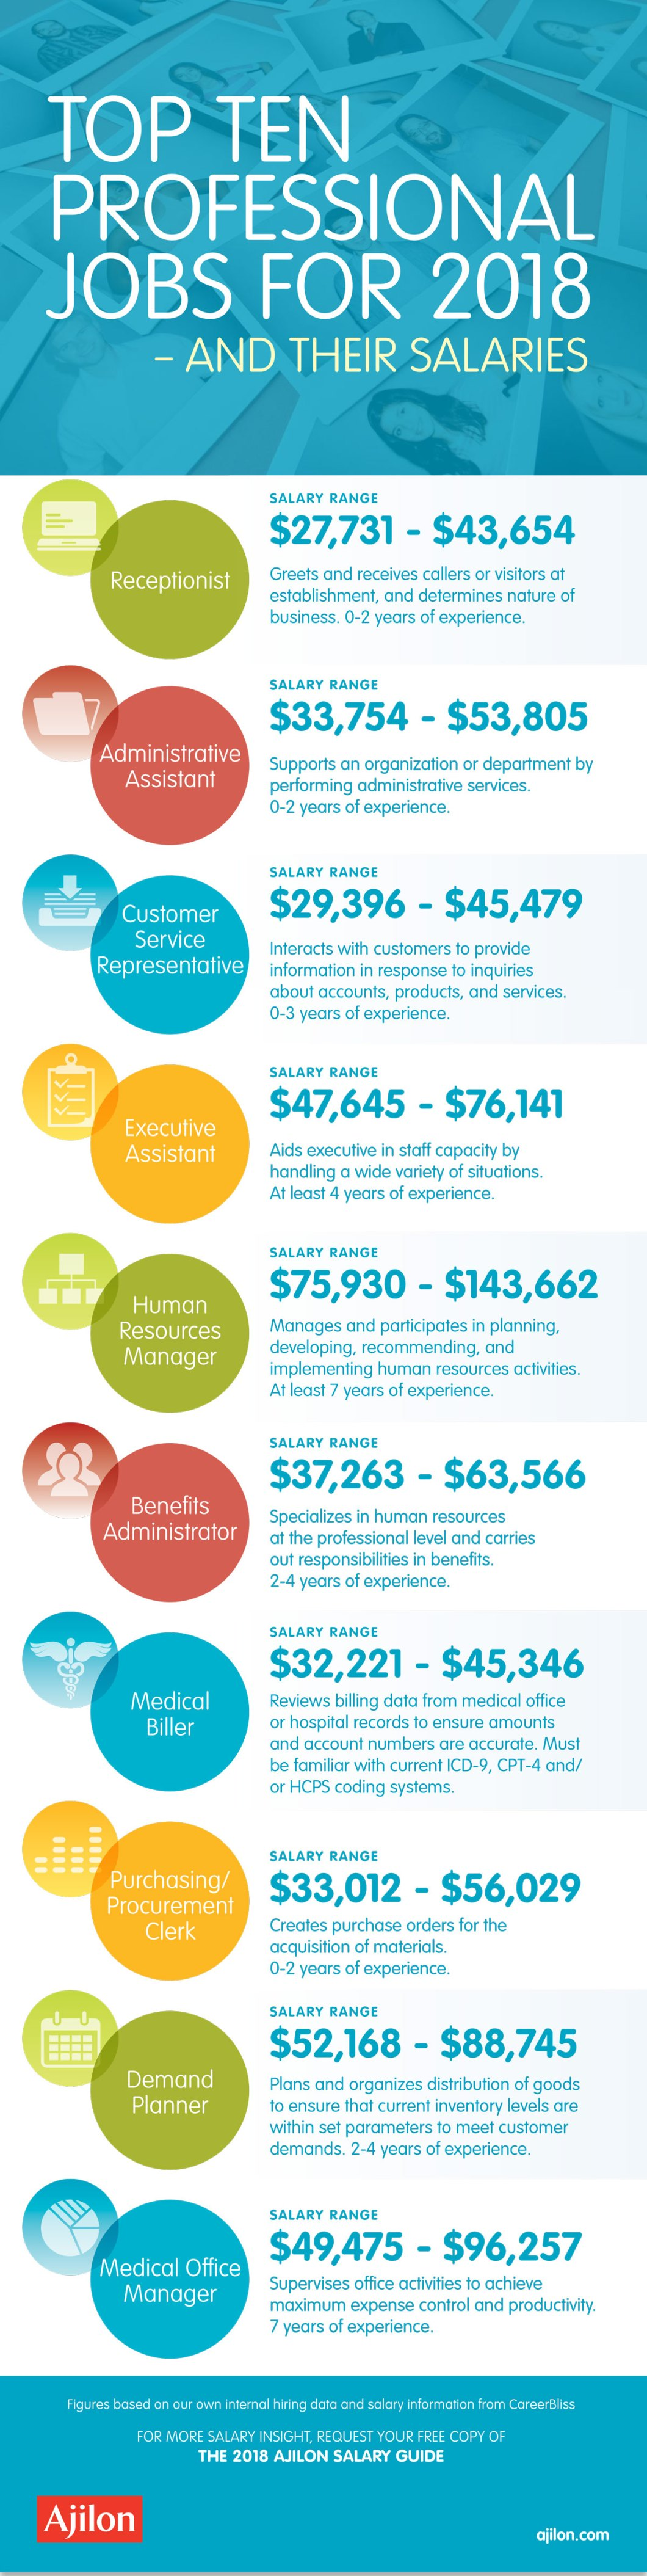 Top 10 Most Wanted Professional Jobs in 2018 - Infographic